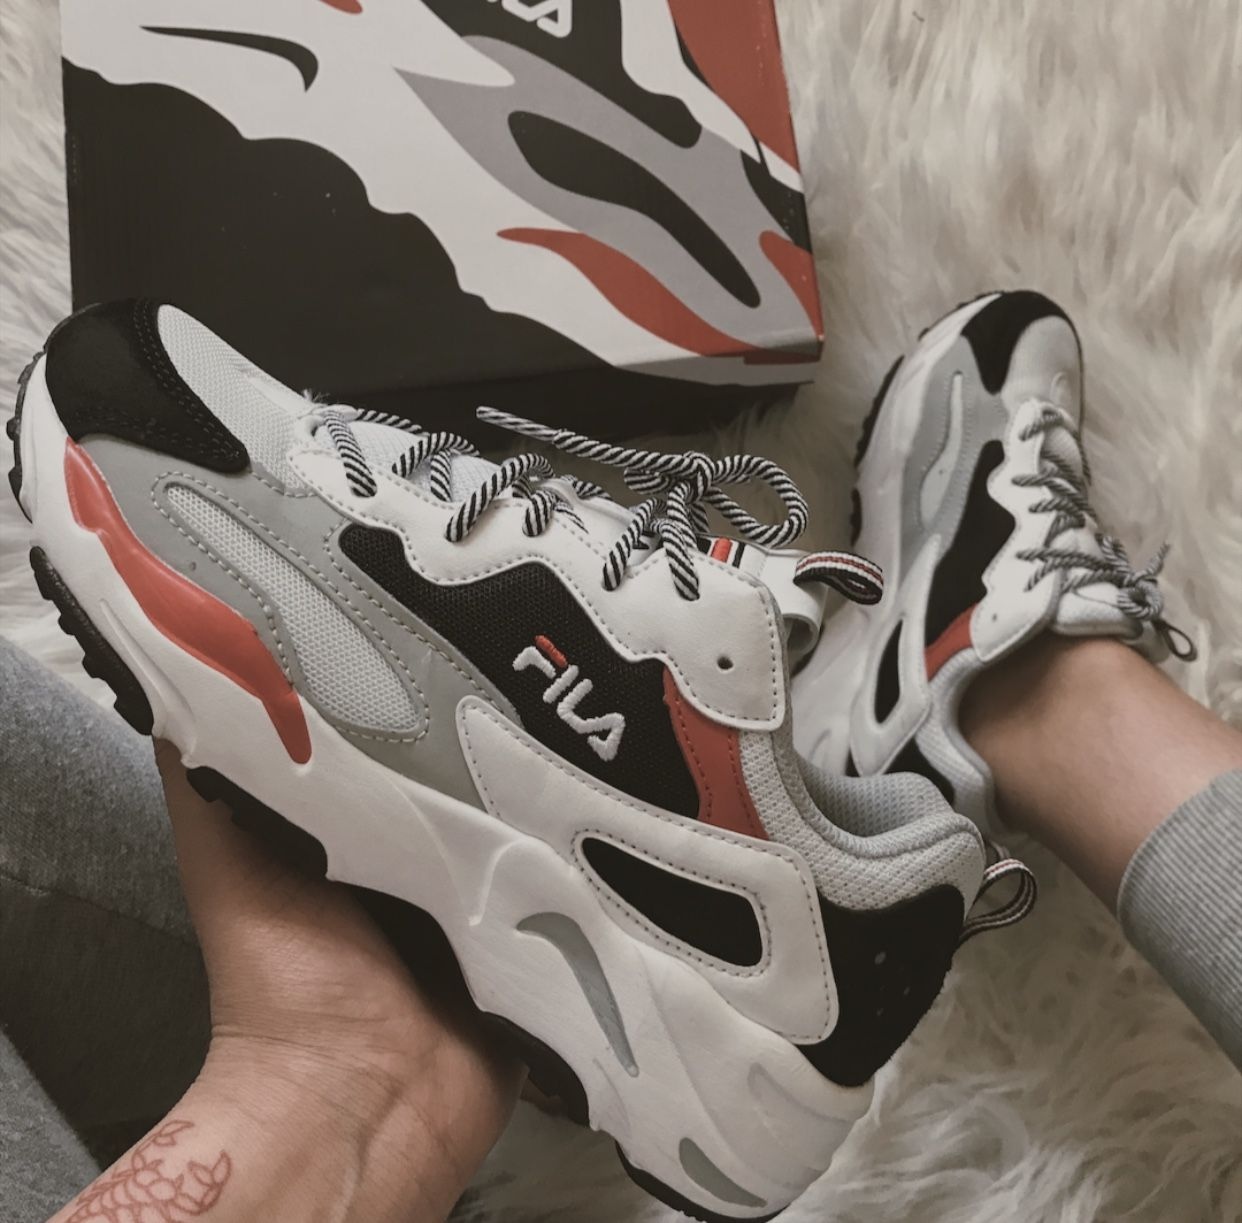 Fila Ray Tracer, can be purchased in journeys or footlocker ...